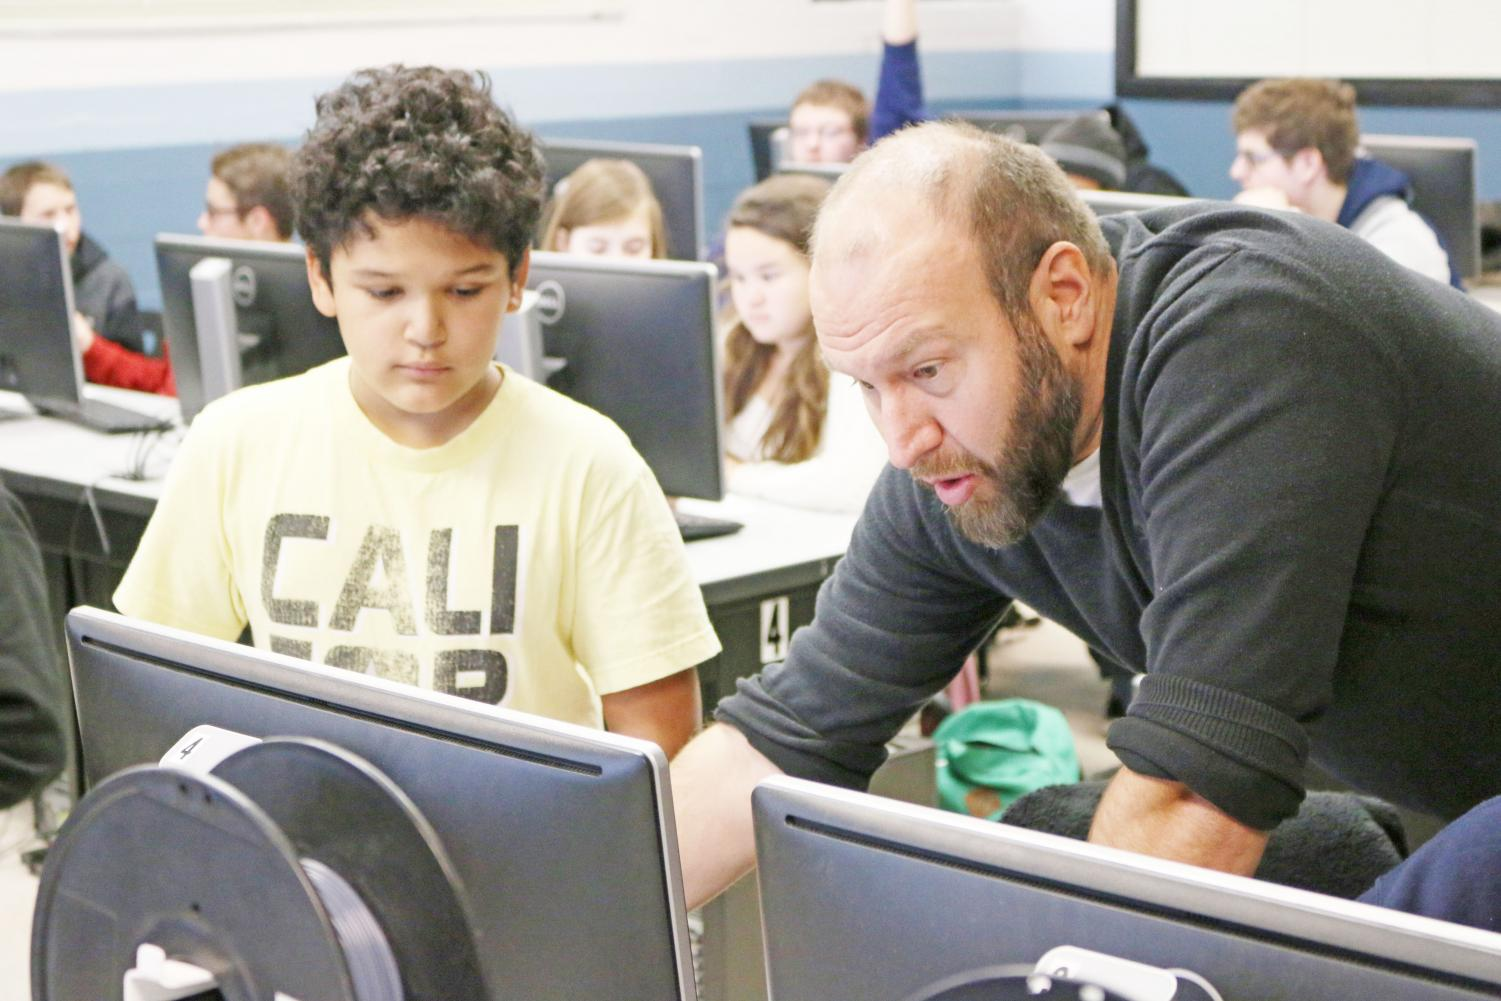 PLTW Engineering teacher John Fuller works with a student in his Intro to Engineering course last week. Fuller is unable to teach the third course in the current engineering track scheduled for next term due to improper credentialing. (NICK PROVENCAL/EYE OF THE TIGER)